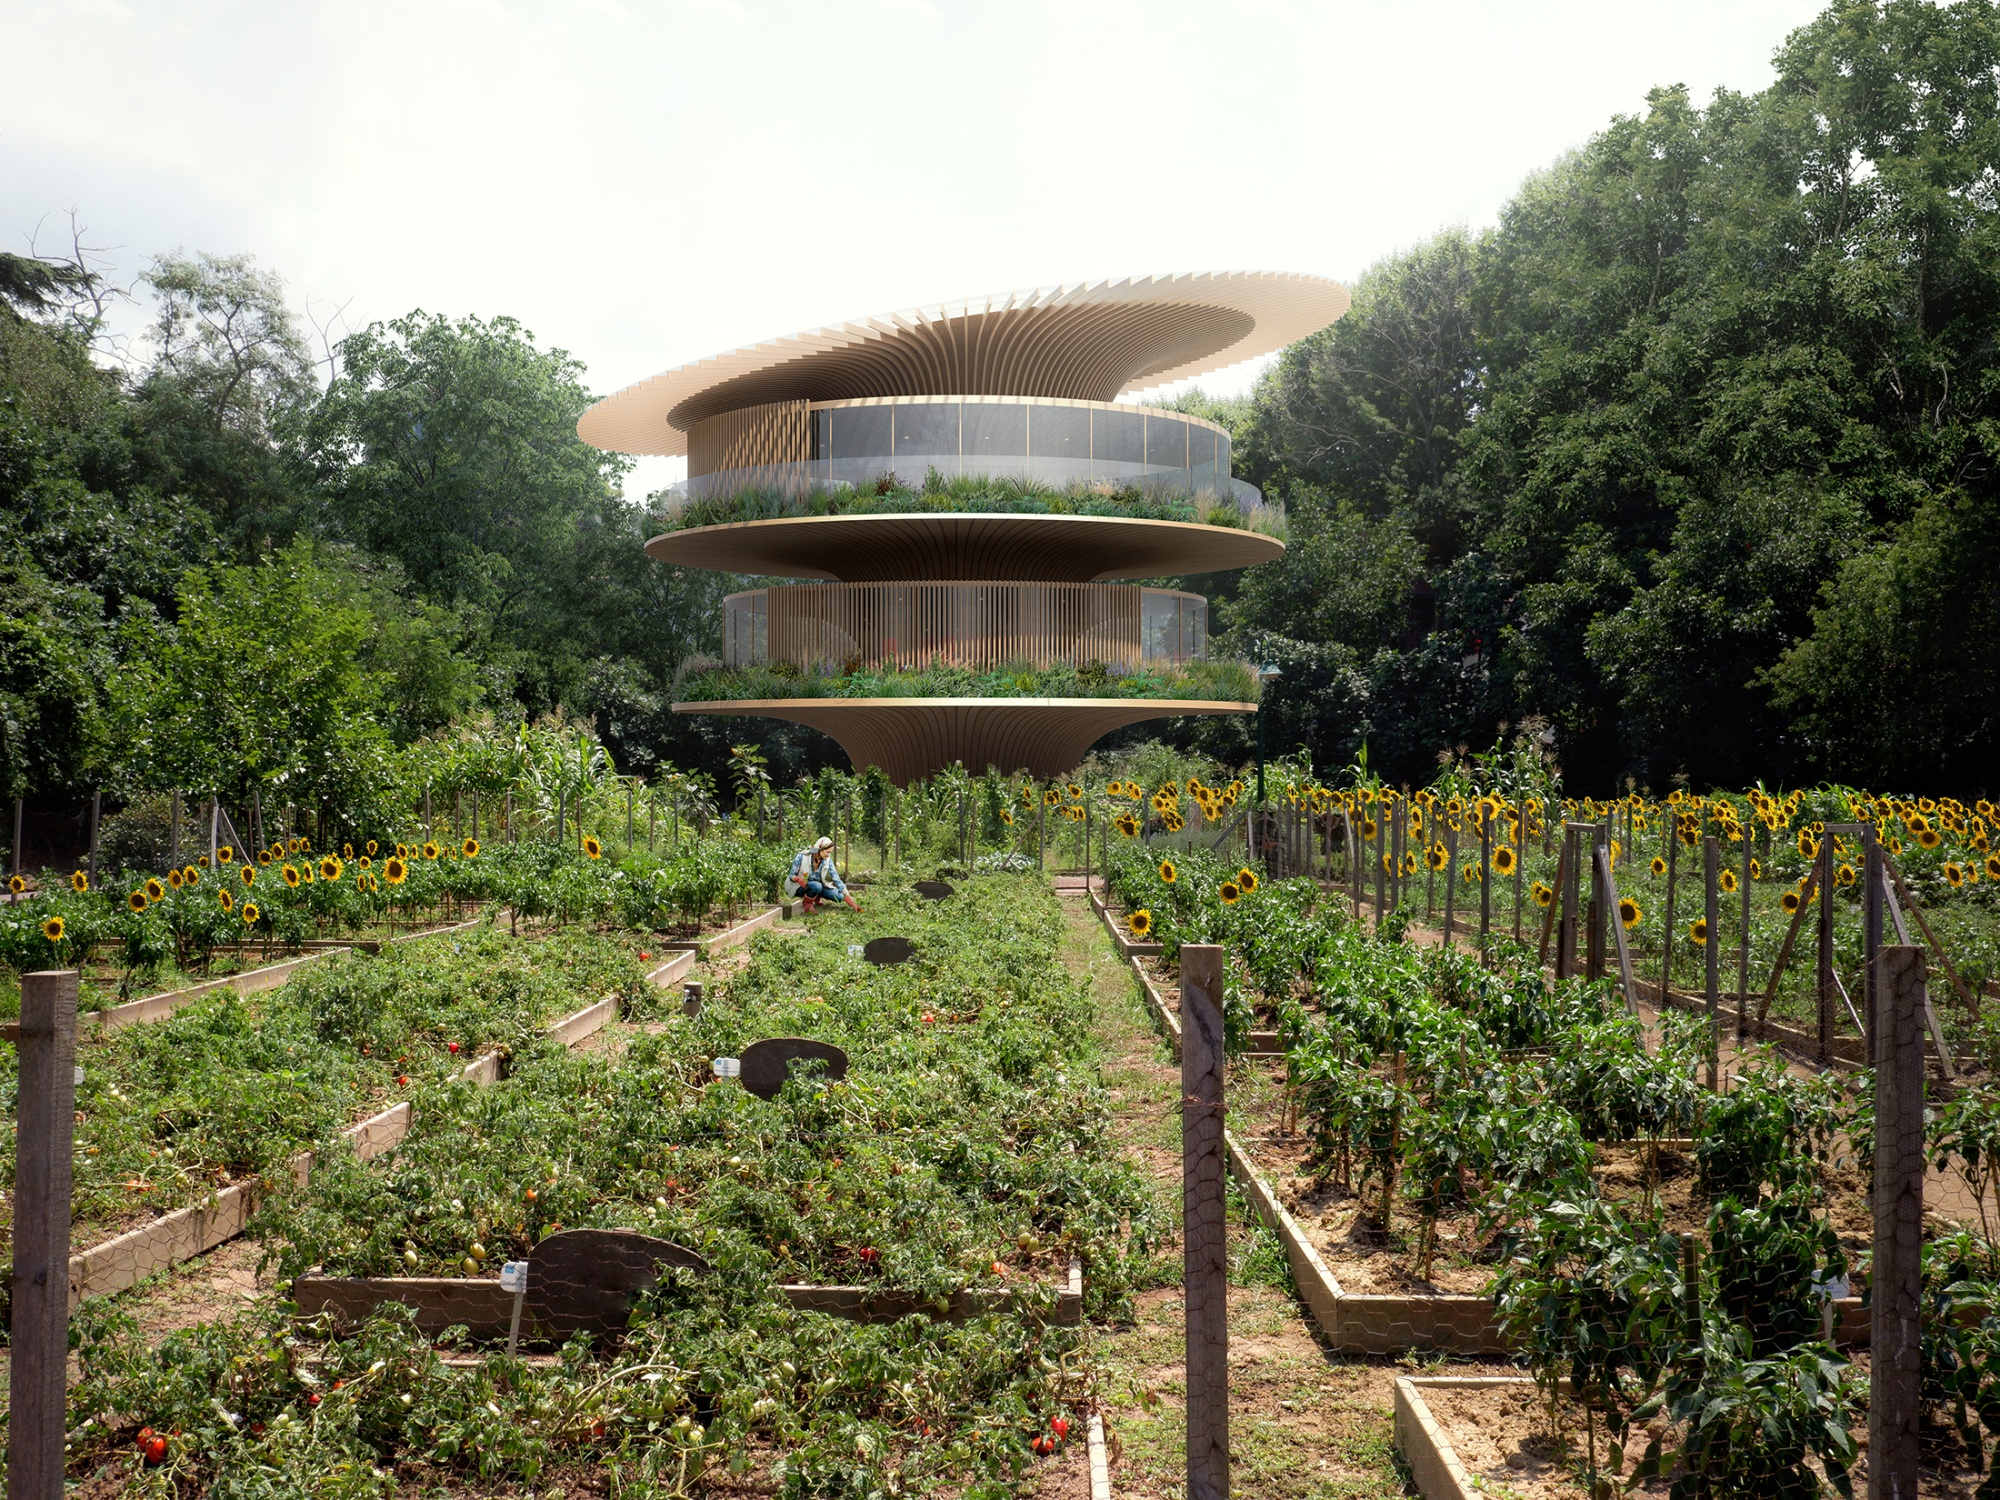 Architects Imagine the Dream Homes of Europe's Green Future